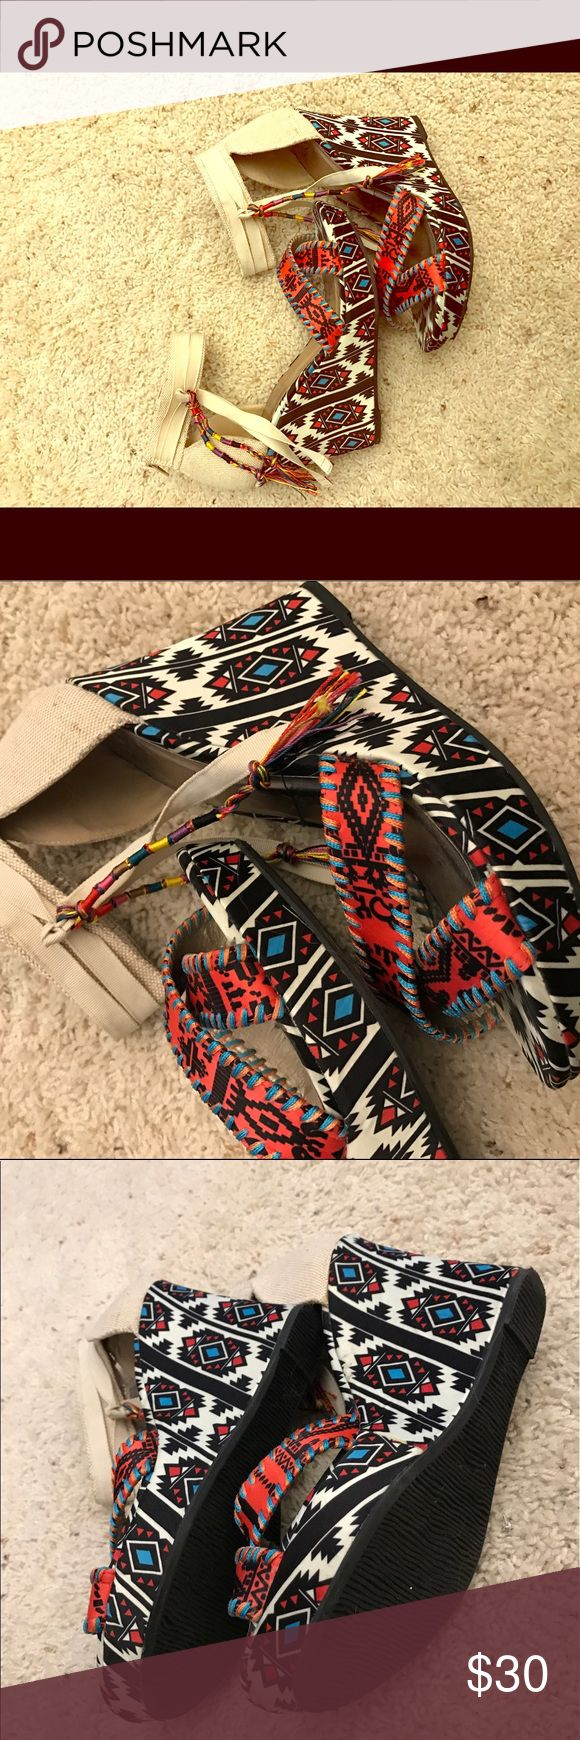 BKE sole tribal wedges Excellent condition! Literally wore them for a photo shoot one time. Enjoy these unique soles. BKE Shoes Wedges